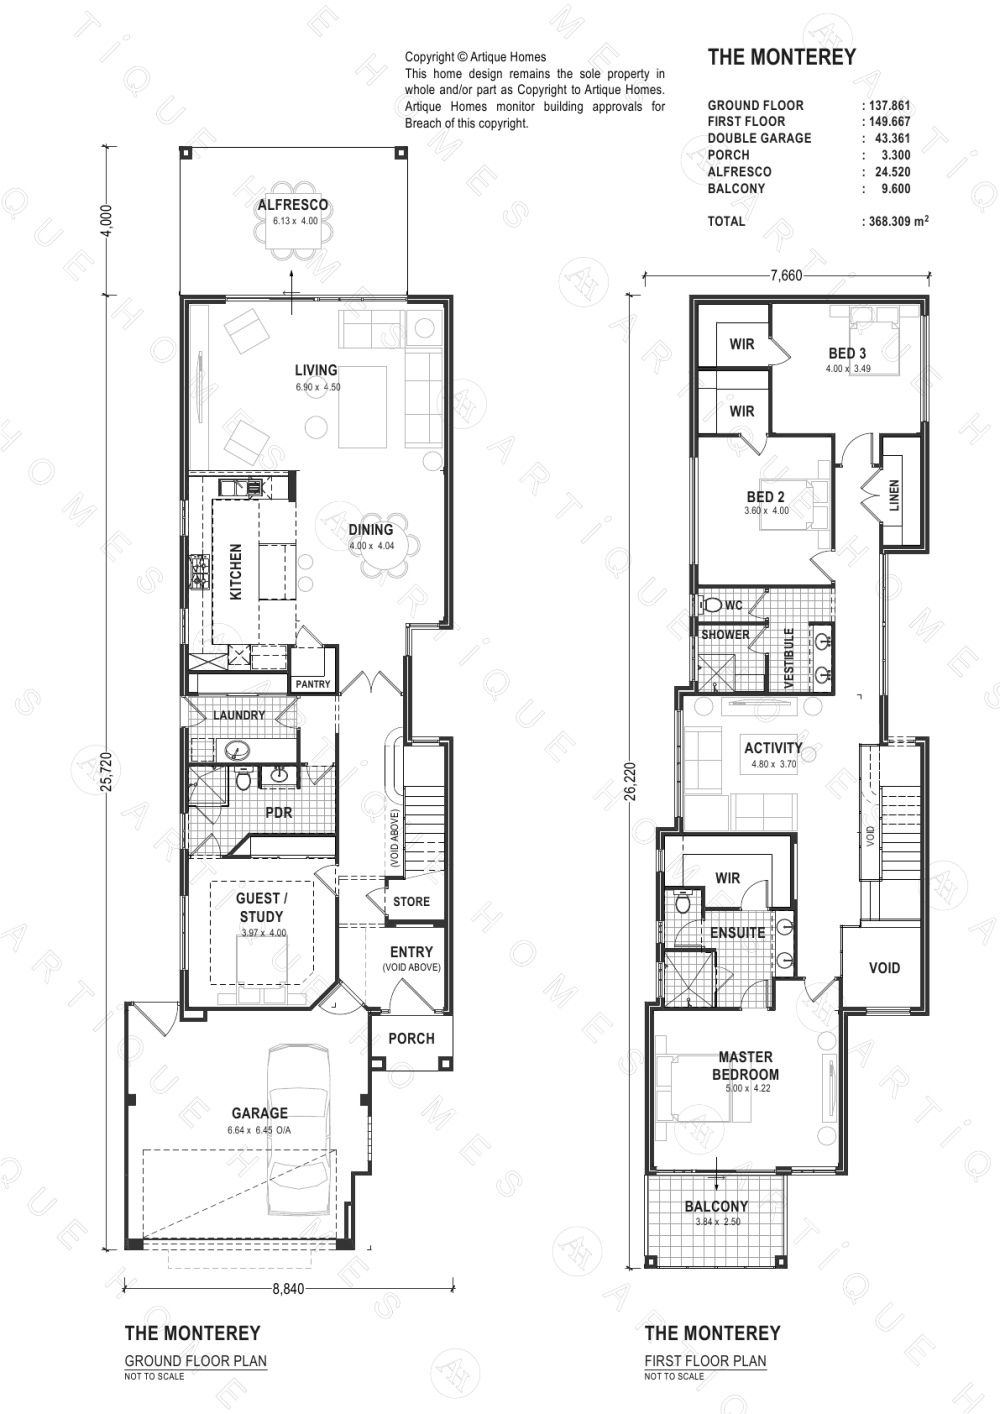 2dbb06aa8446fa4f470d1ded7d96dceb Narrow Townhouse Floor Plan Reverse on 4story townhome floor plans, narrow lot house plans, brownstone town houses floor plans, luxury townhome floor plans, kips bay apartment floor plans, studio apartment floor plans, townhouse building plans, long shaped 2 story house plans, townhouse complex layout plans, narrow duplex house plans, beach townhouse plans,